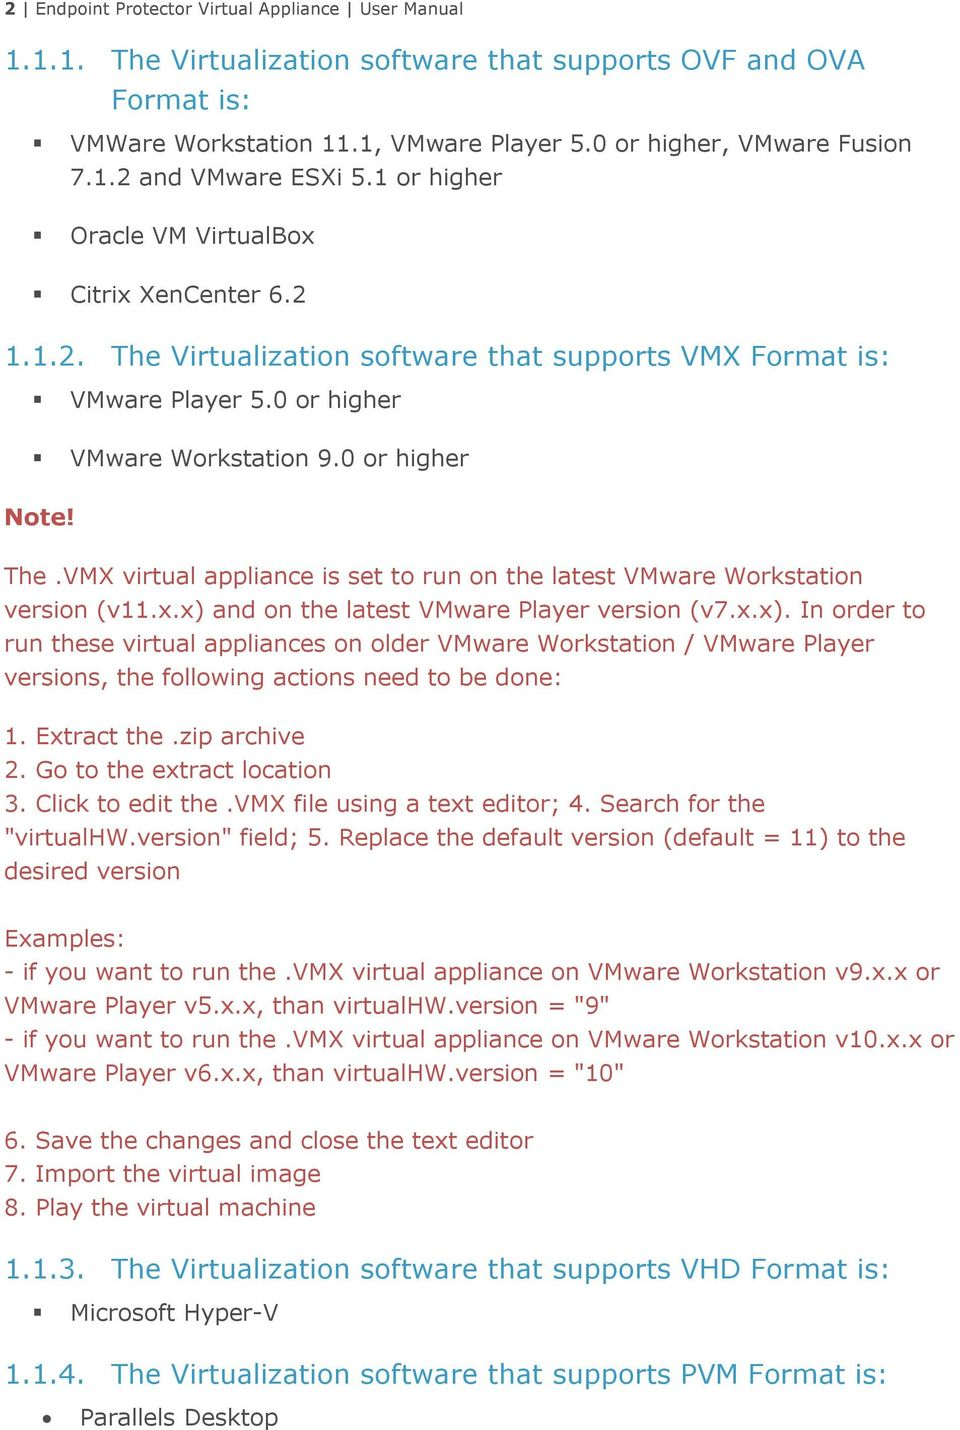 x.x) and on the latest VMware Player version (v7.x.x). In order to run these virtual appliances on older VMware Workstation / VMware Player versions, the following actions need to be done: 1.